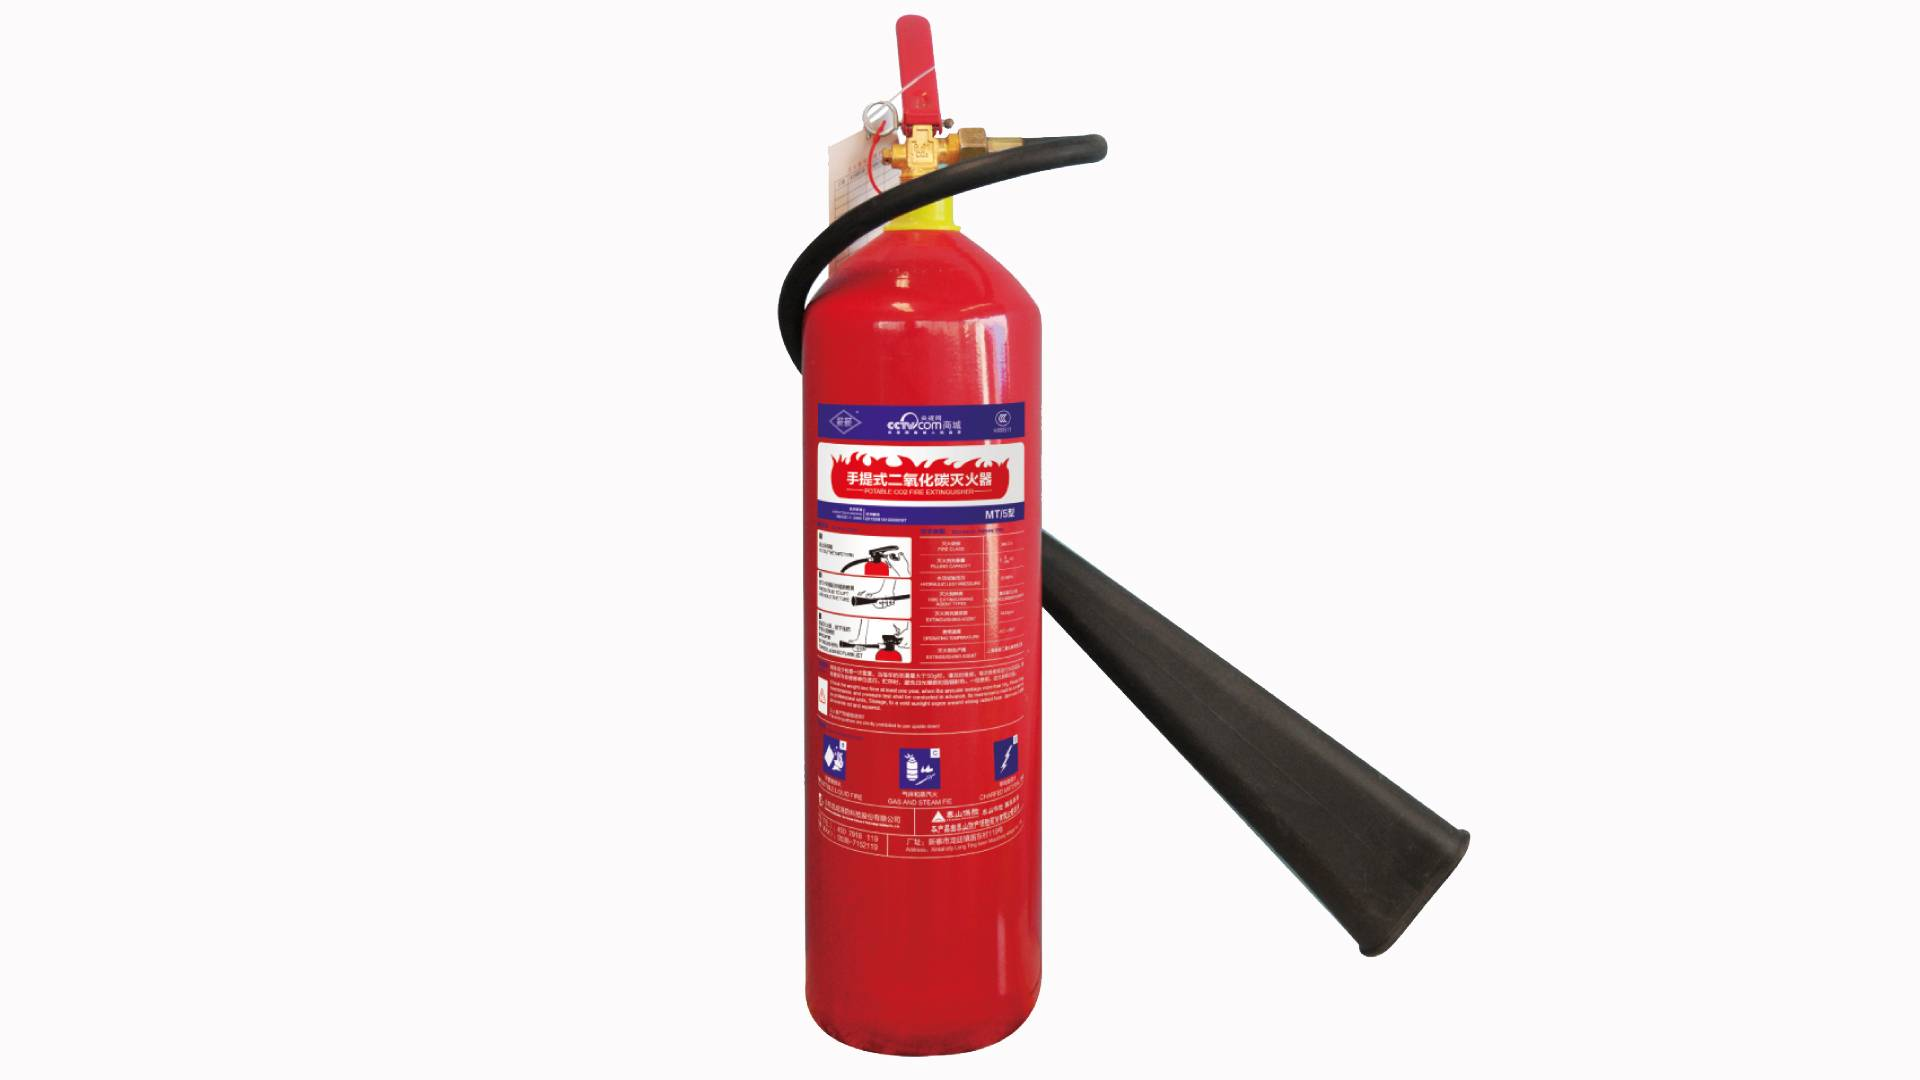 0.5Kg ball type portable/car mini use ABC40% dry powder fire extinguisher in Vietnam